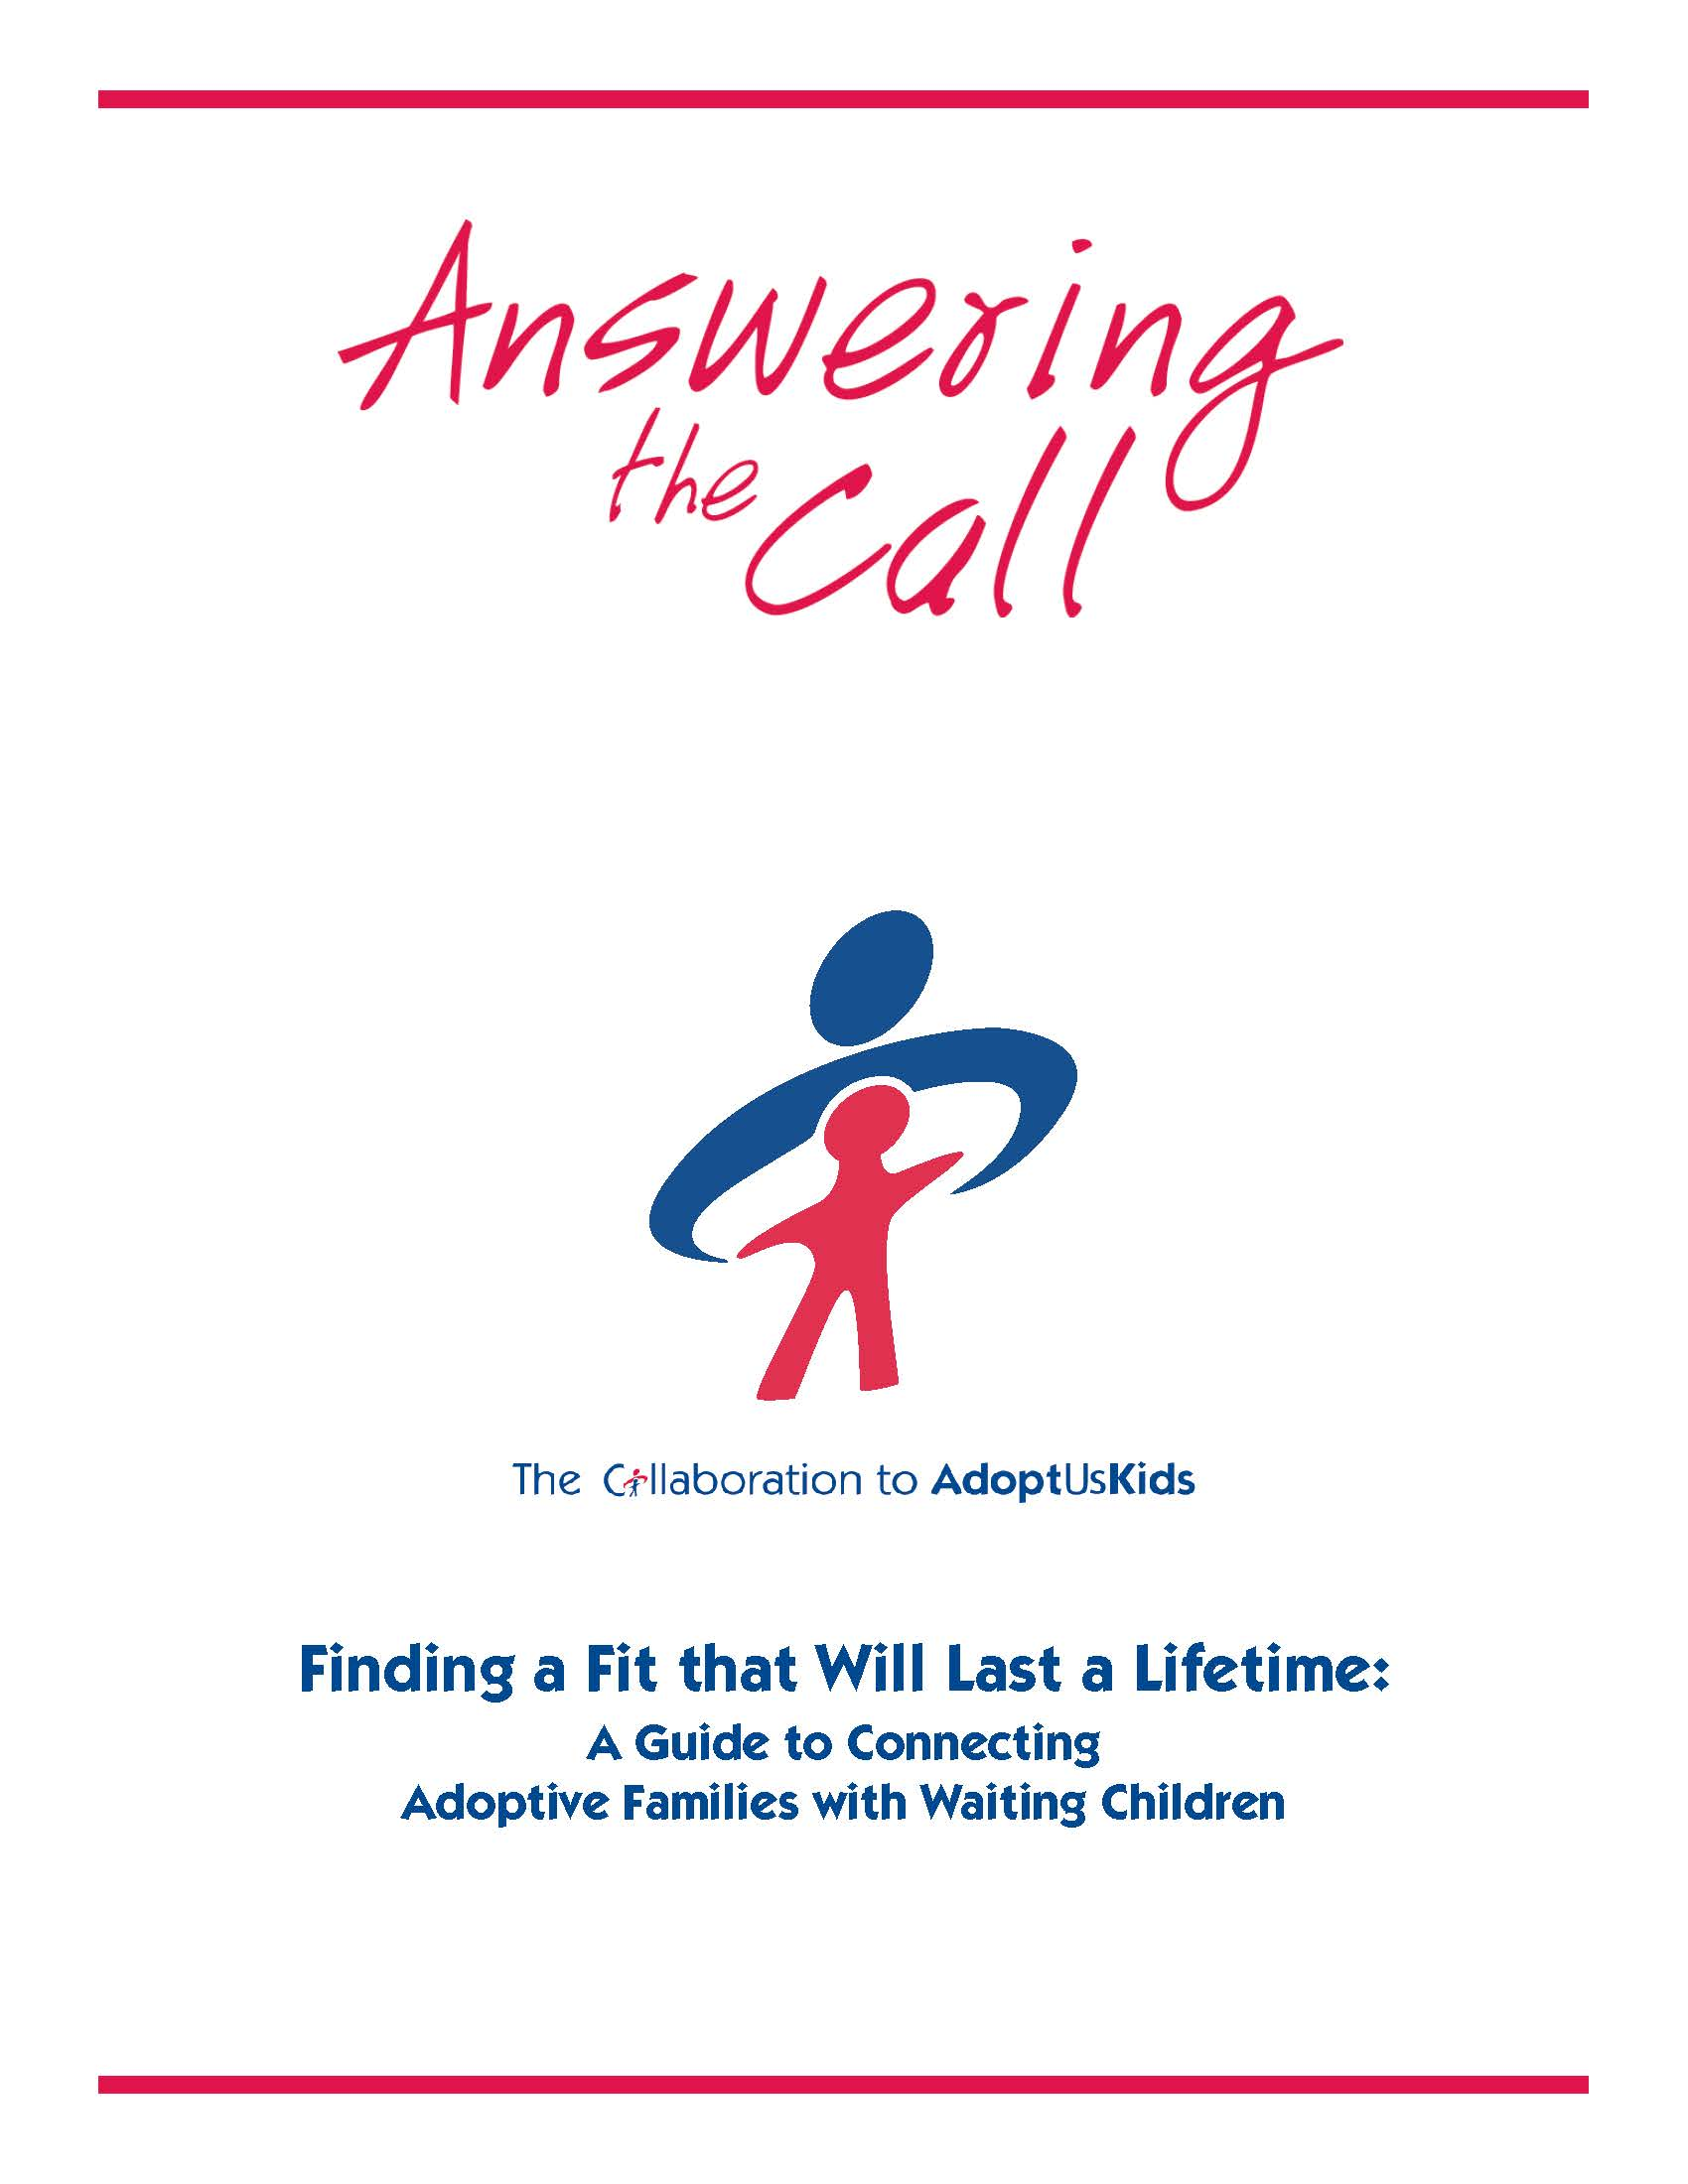 Finding a Fit that will Last a Lifetime: A Guide to Connecting Adoptive Families with Waiting Children (2006)